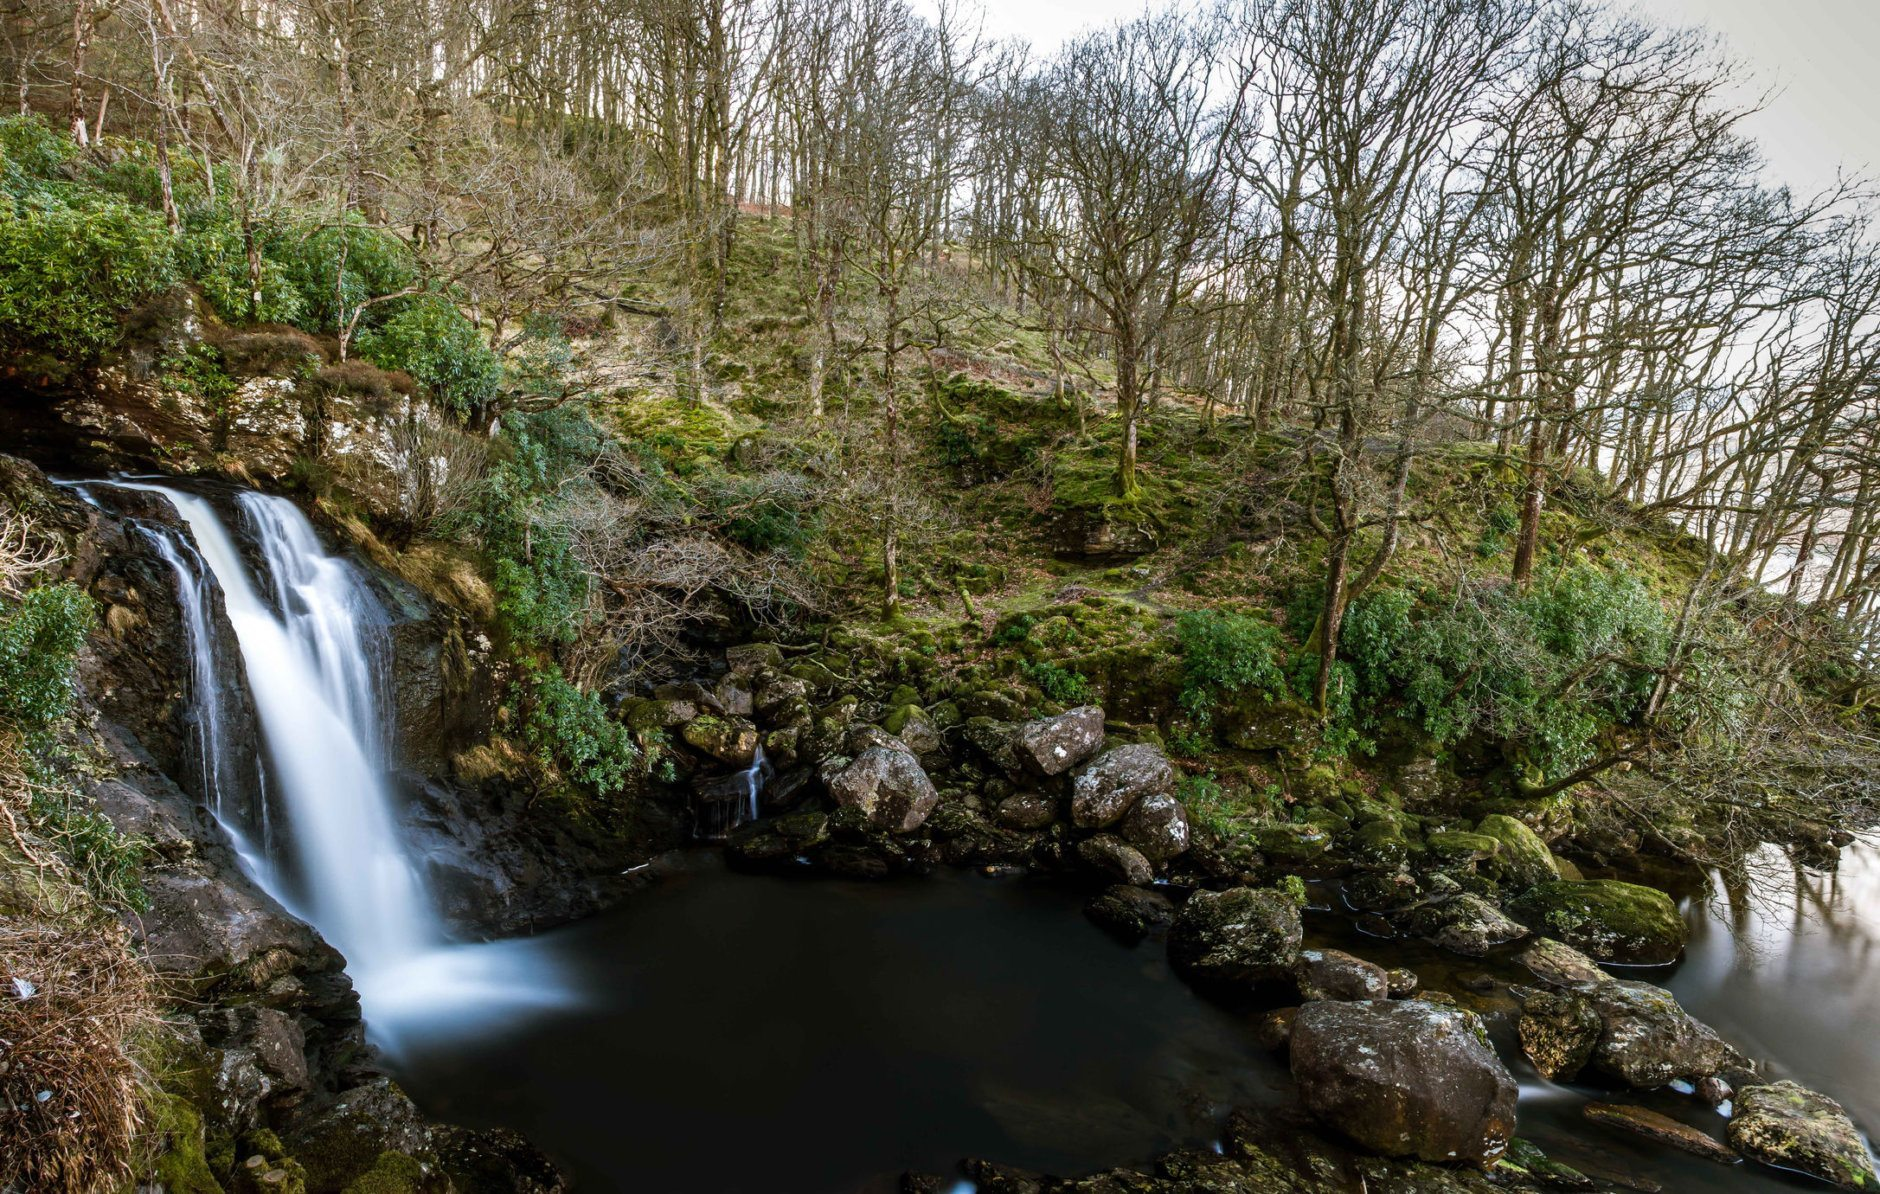 Waterfall in the hamlet of Inversnaid, Scotland. Seen here at the base of the fall as it tumbles into Loch Lomond.